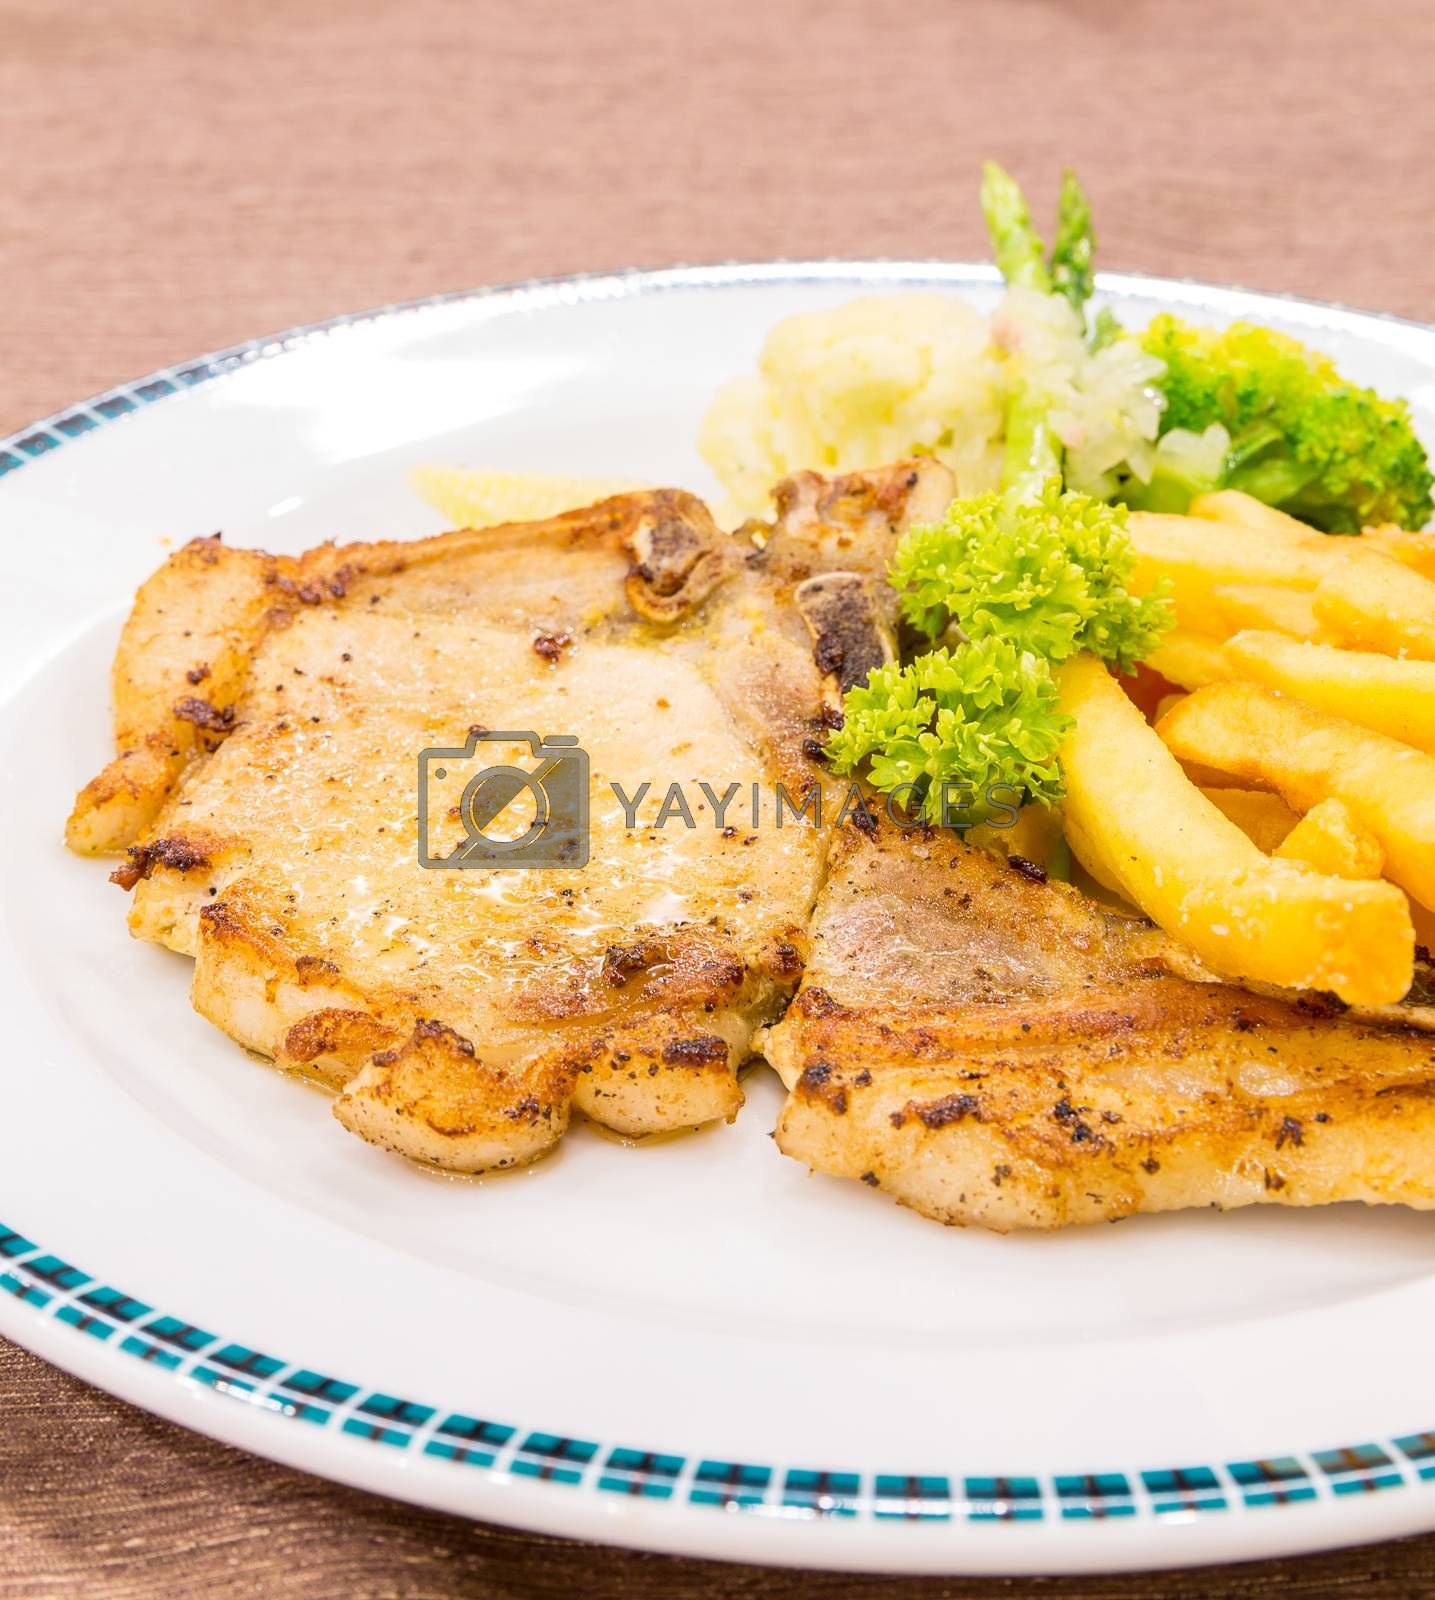 grilled pork chops with french fries